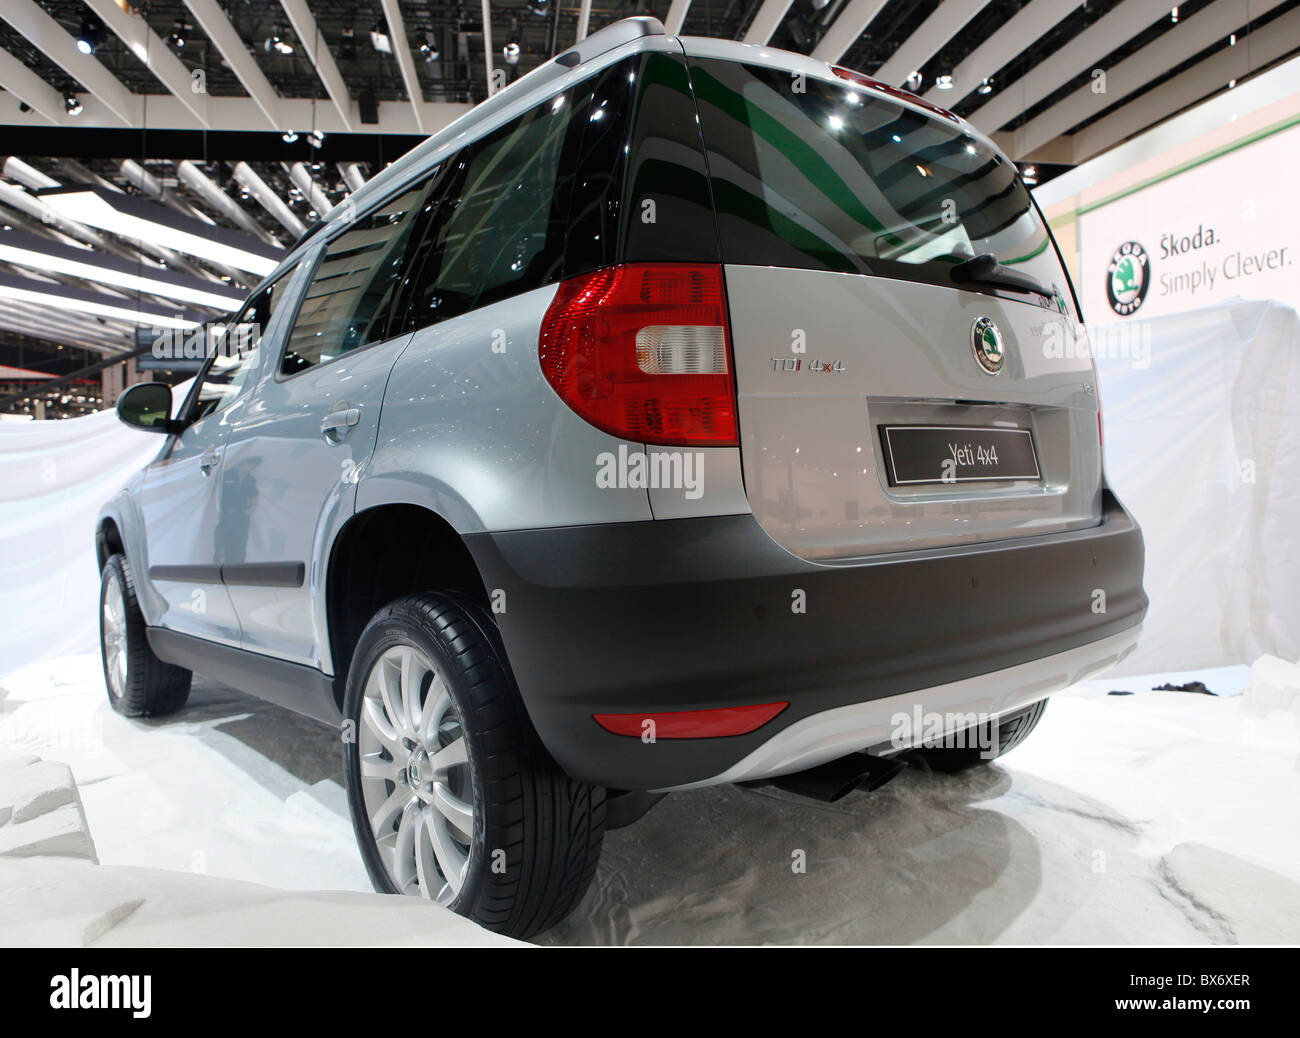 Skoda Yeti Car Suv Stock Photo Royalty Free Image Alamy